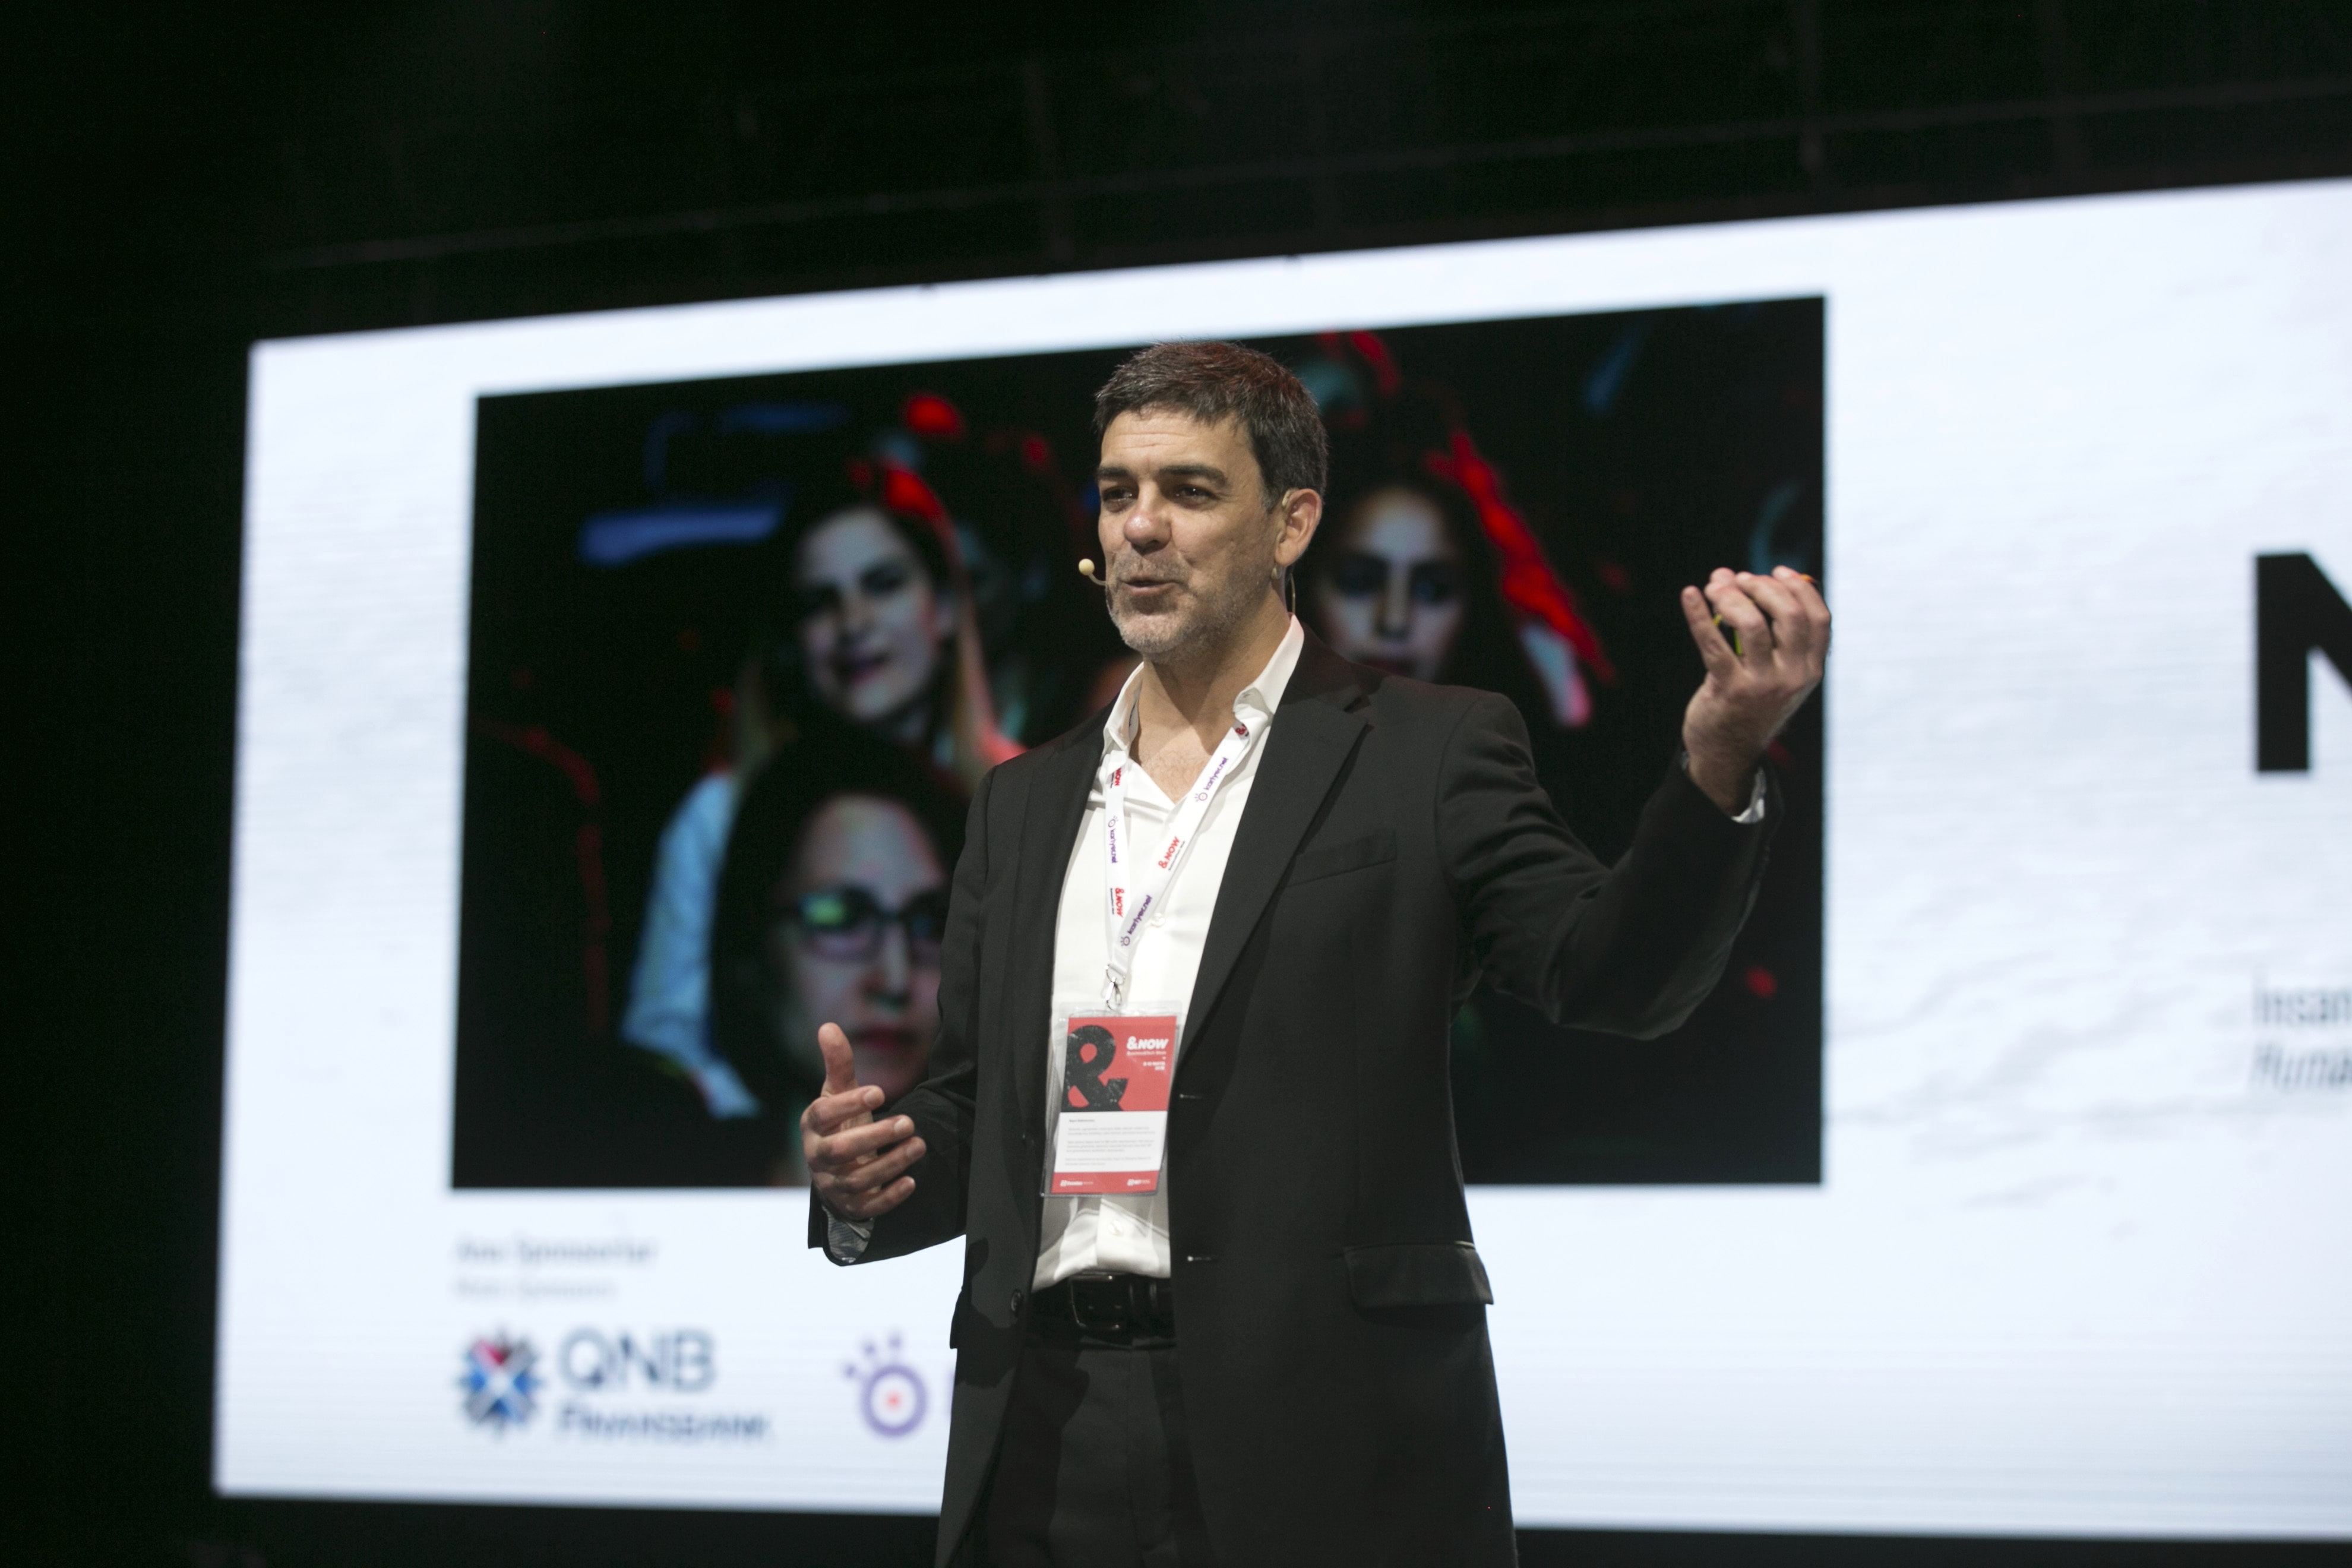 gustavo razzetti fearless culture ceo presenting at a conference